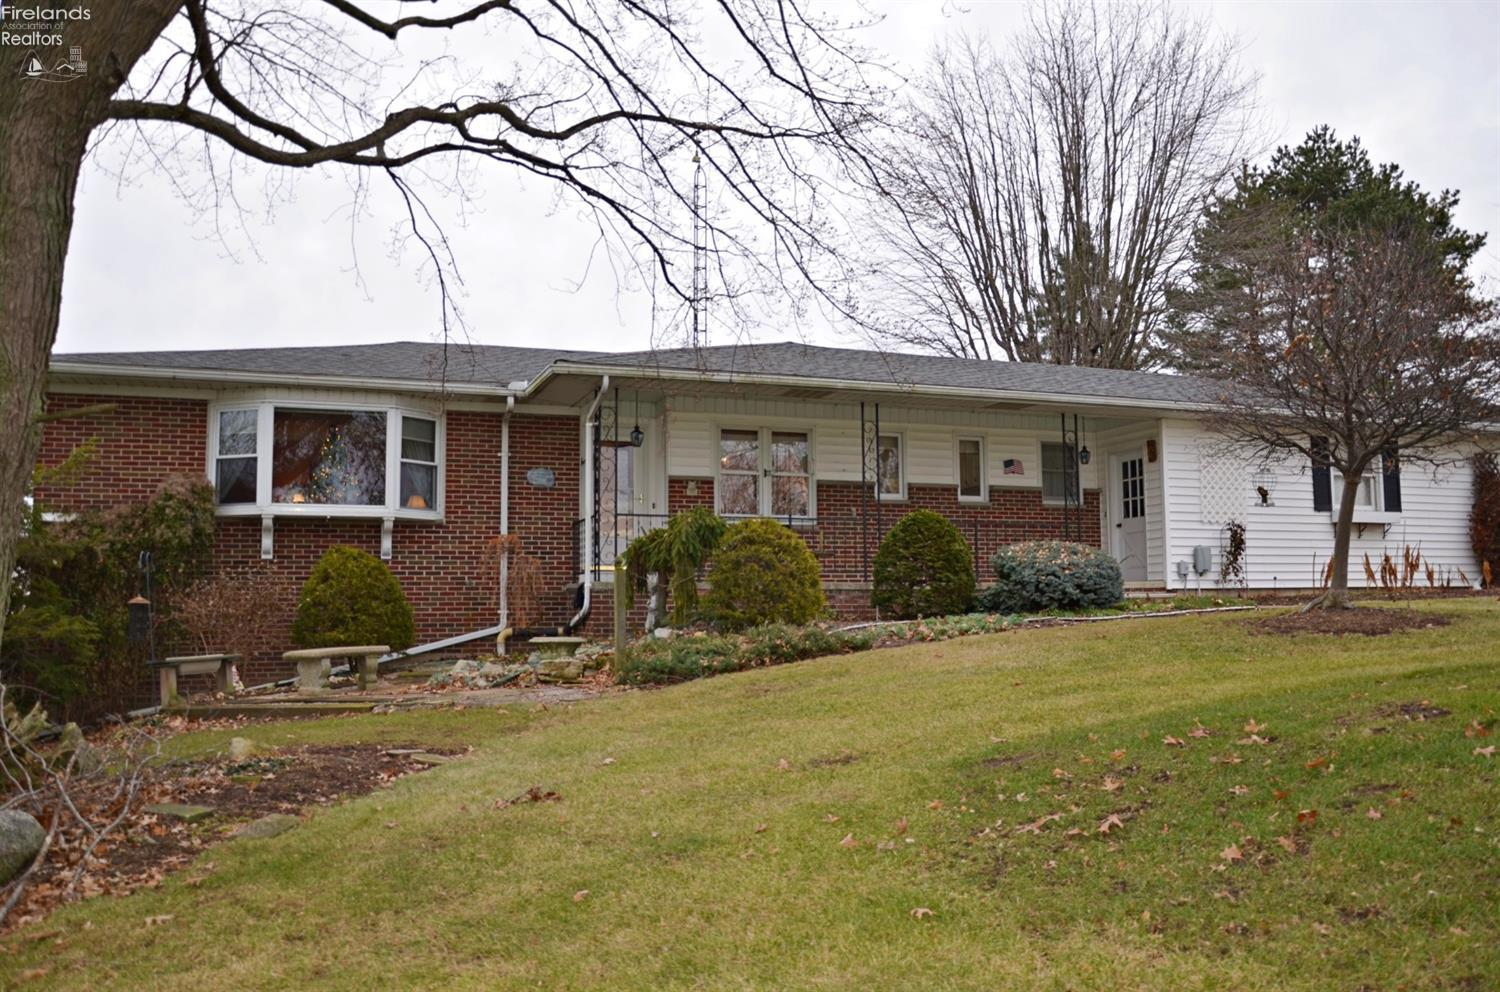 4117 W TOWNSHIP RD 98, TIFFIN, OH 44883  Photo 4